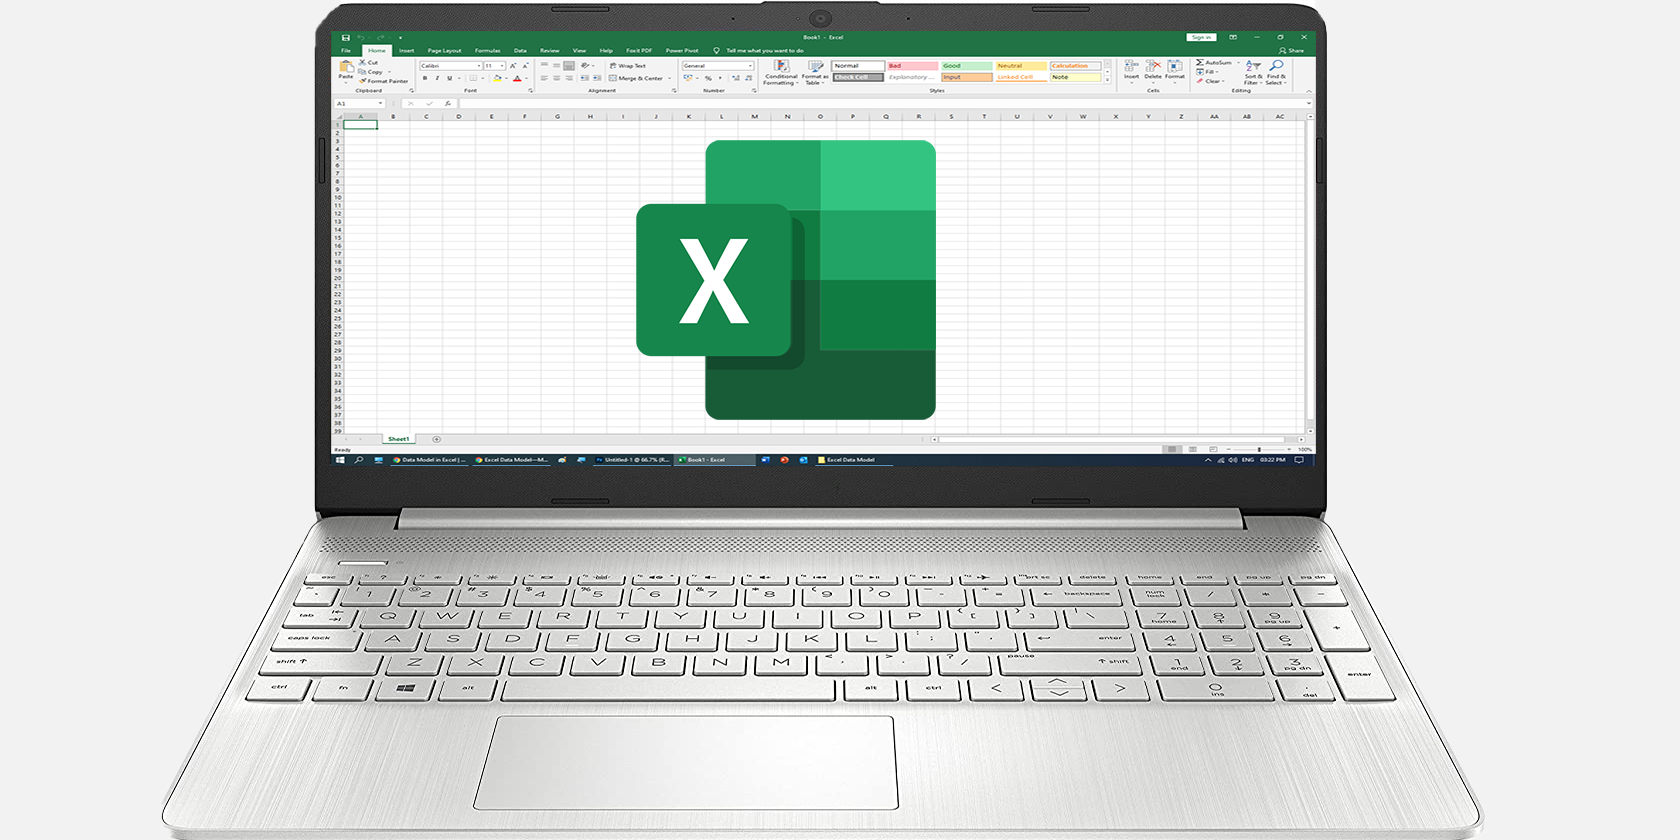 How to Create Relationships Between Multiple Tables Using Data Model in Excel